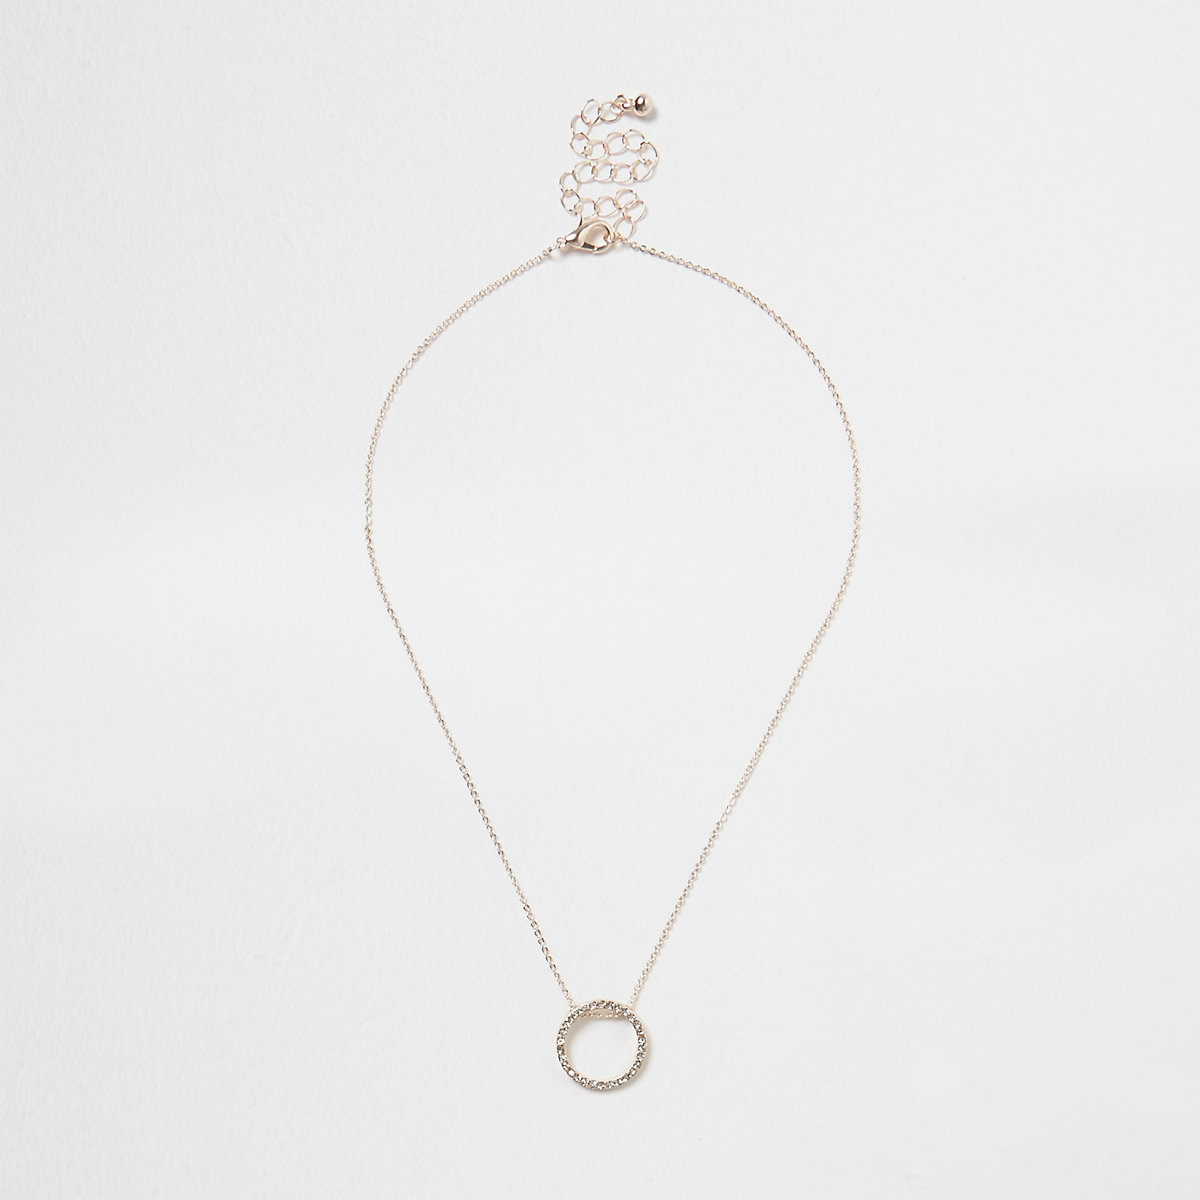 Rose gold tone diamante pave circle necklace